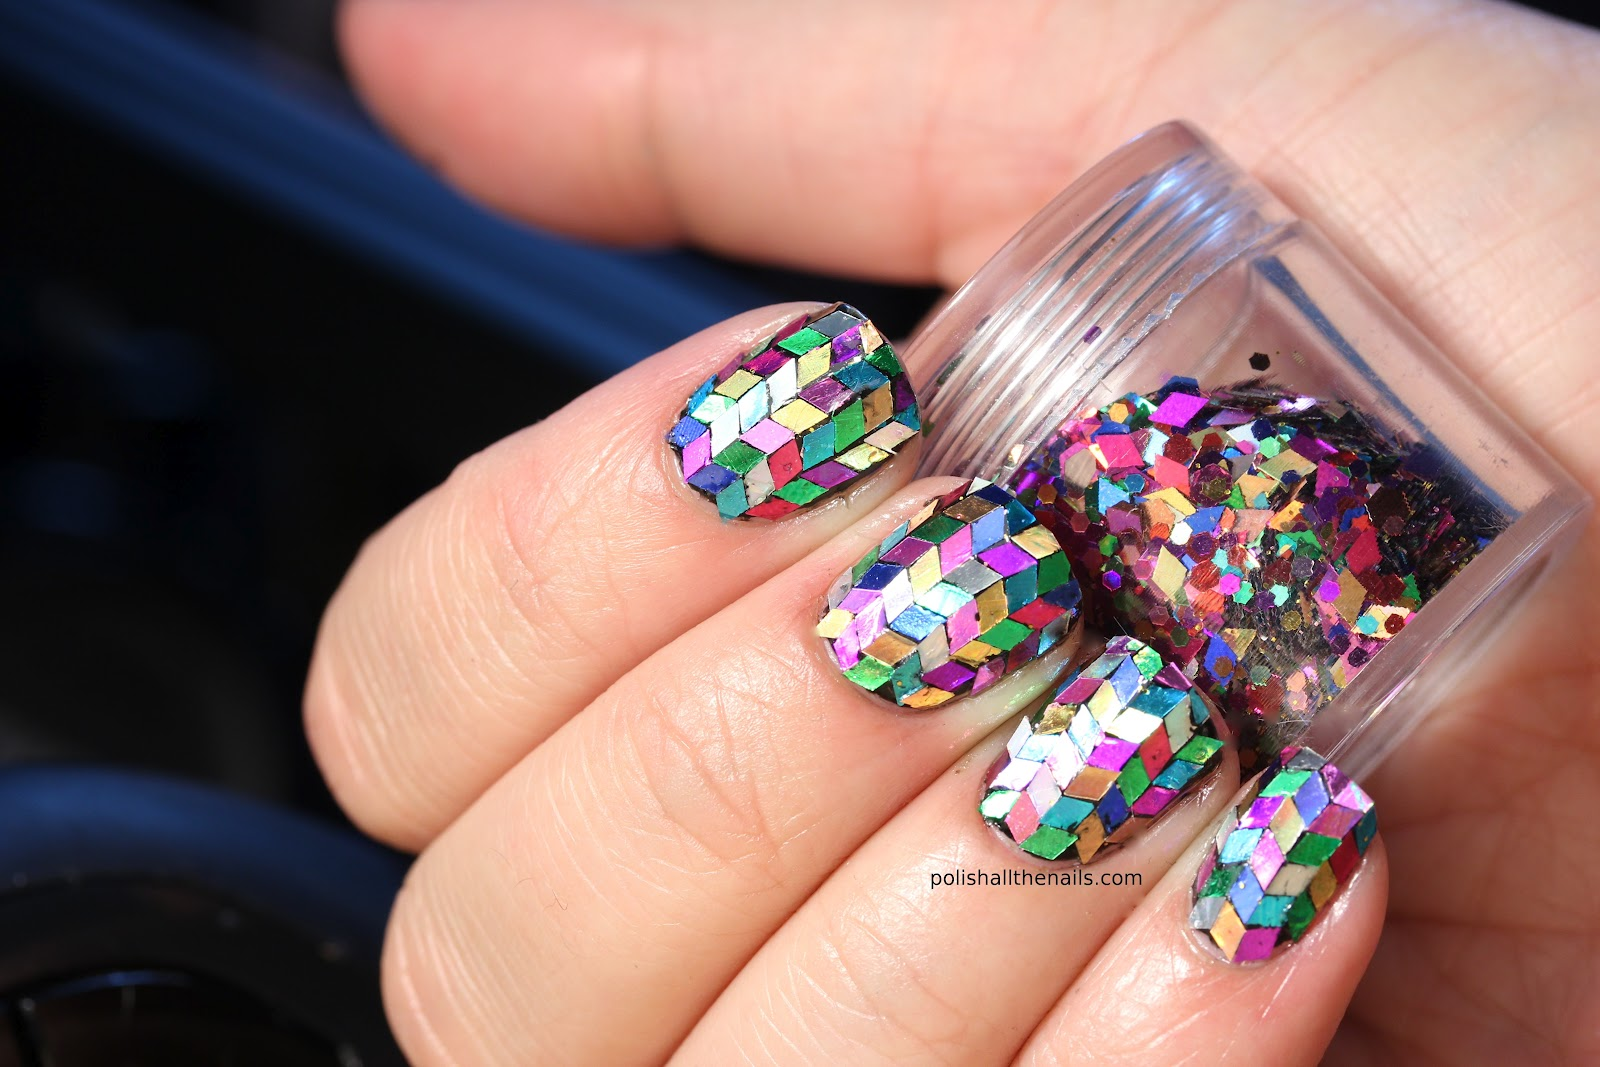 Awesome Nail Polish With Diamond 2015 - Reasabaidhean